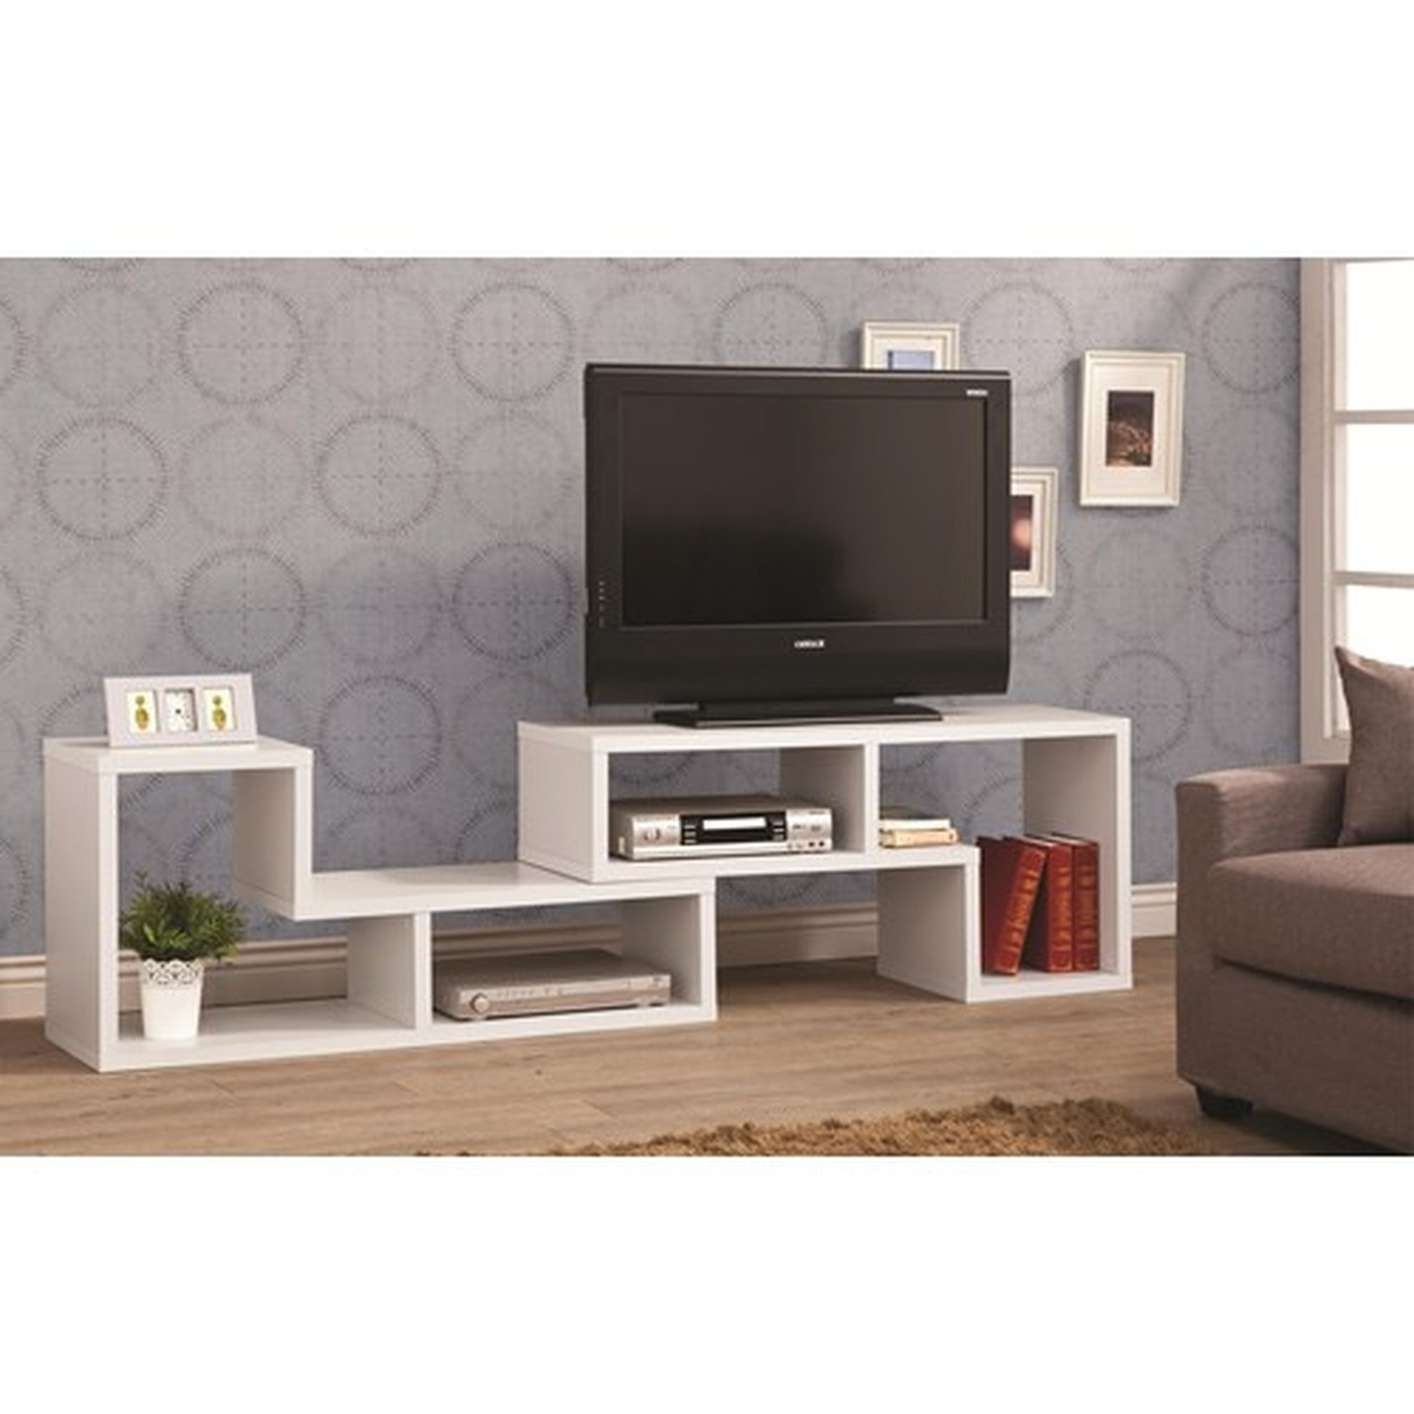 White Wood Tv Stand – Steal A Sofa Furniture Outlet Los Angeles Ca In Modern Wood Tv Stands (View 15 of 15)